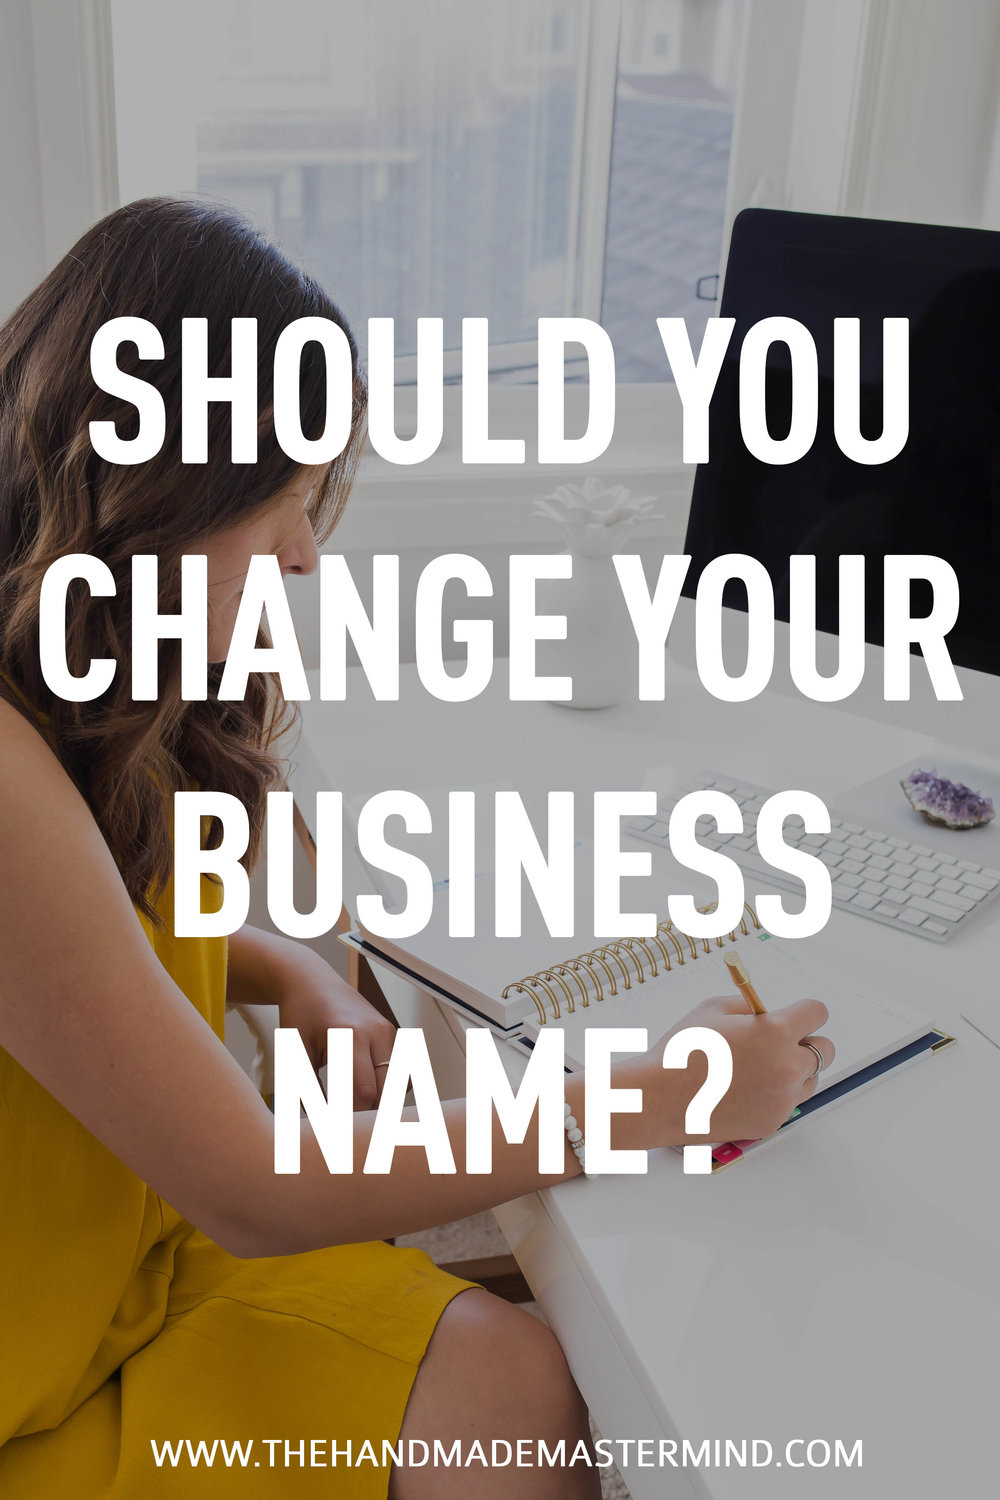 Should you change your business name?